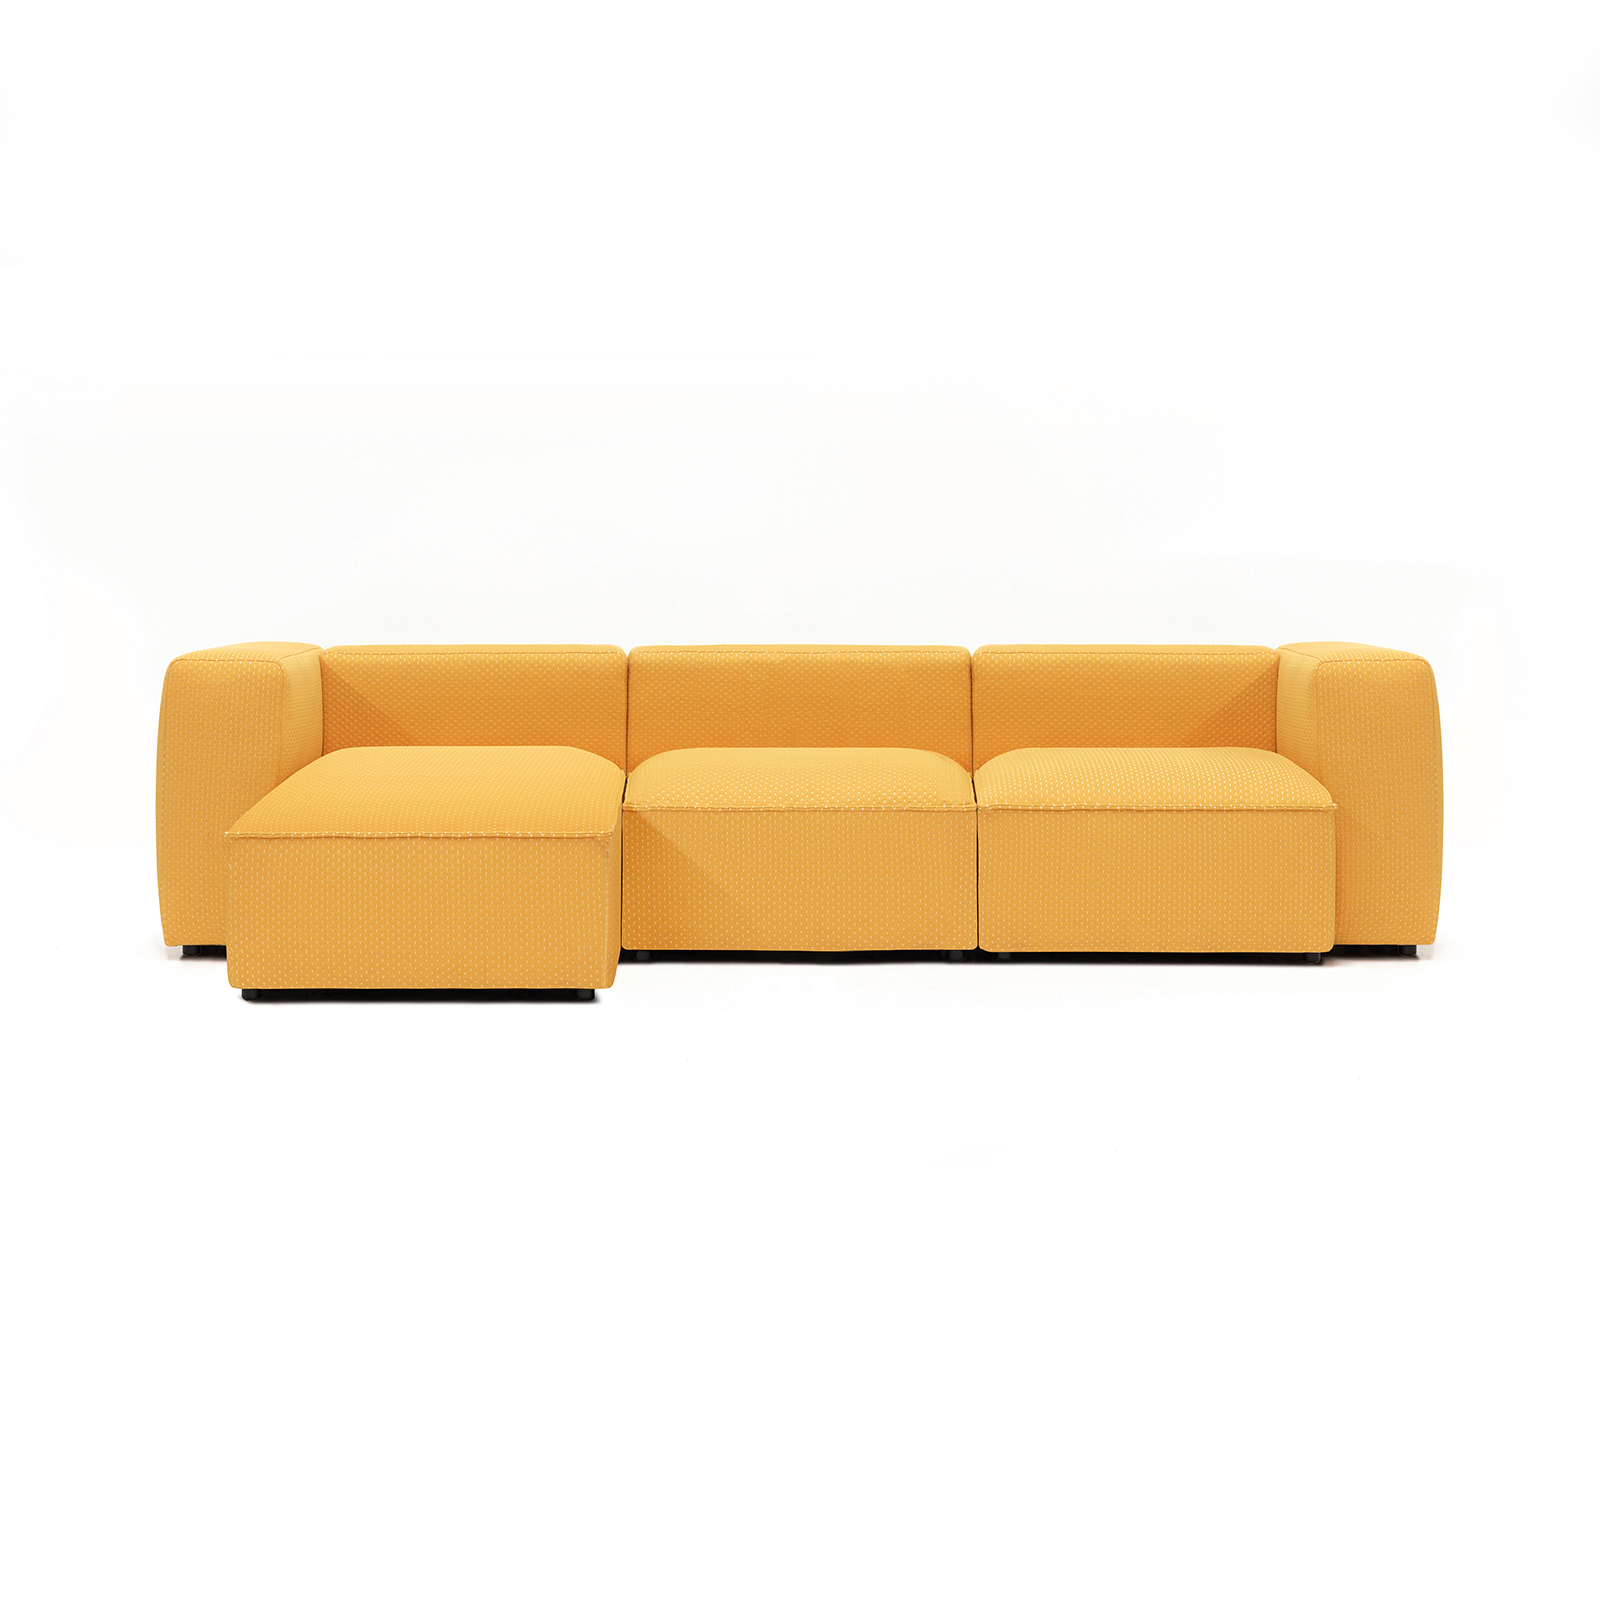 Permanent Future Easey Sofa 3 Seater Sectional Short Left Zoom Yellow Pf Sf Ea X3s L Zy Front View